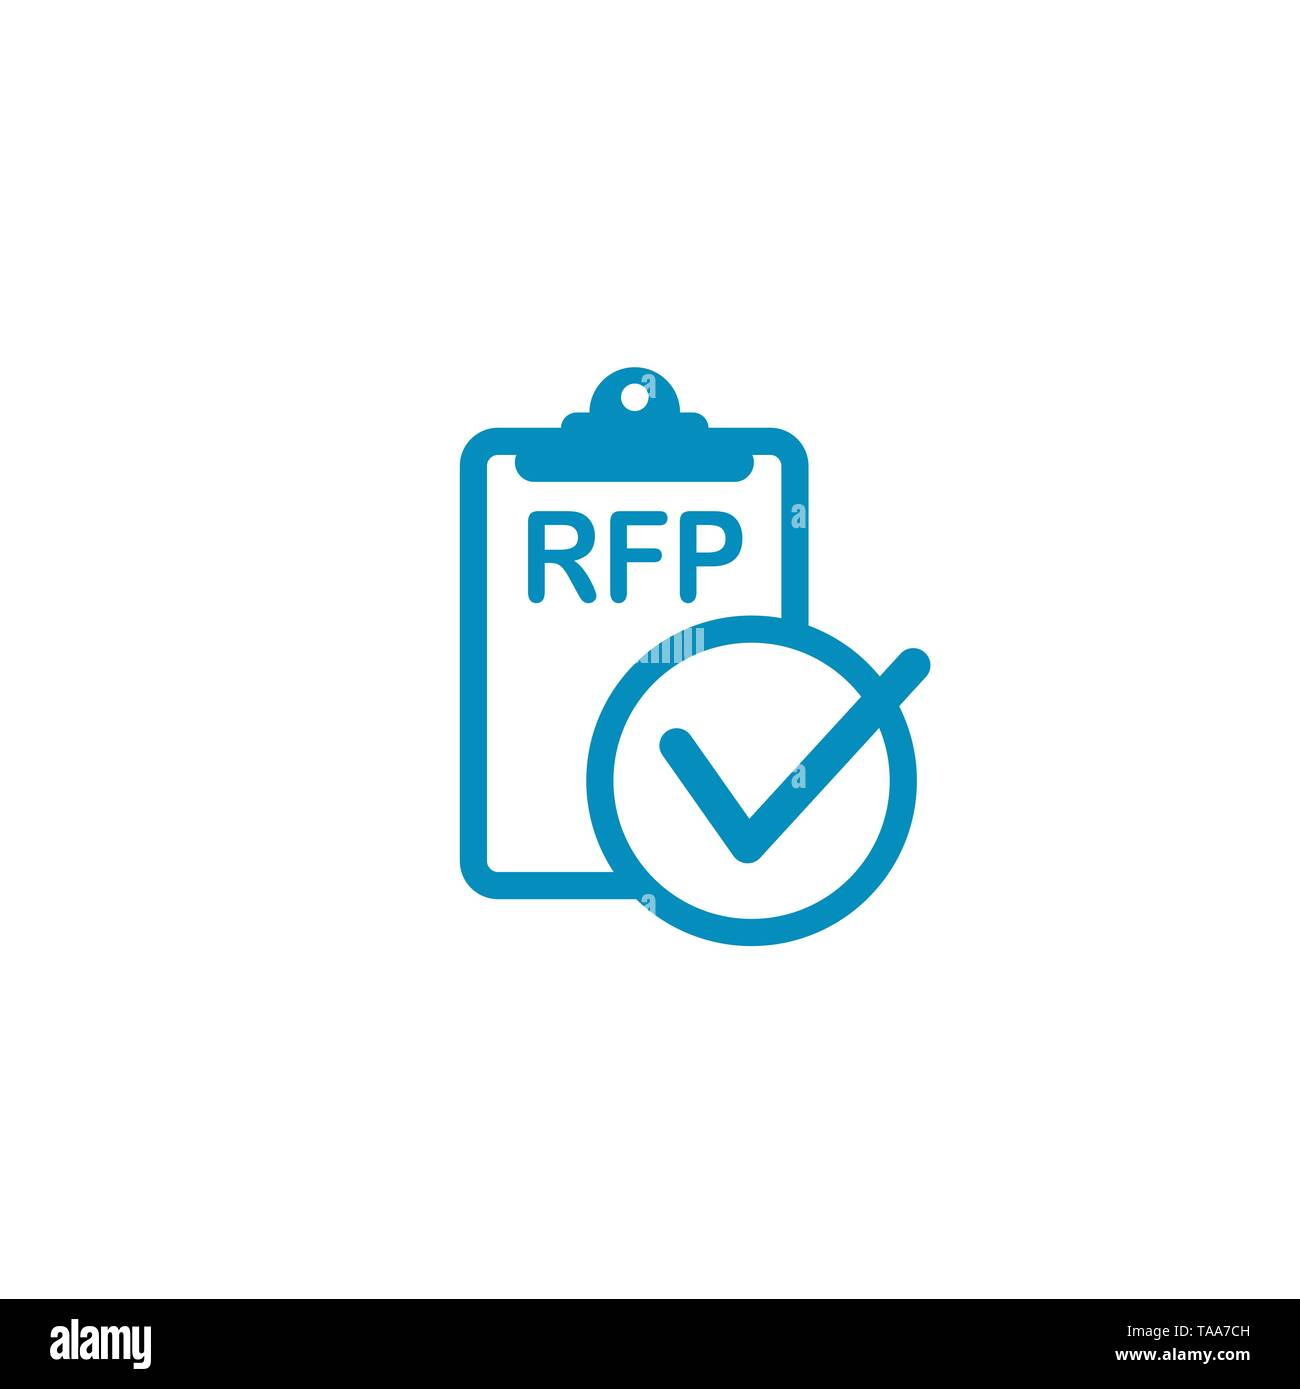 RFP Icon - request for proposal concept - idea - Stock Image